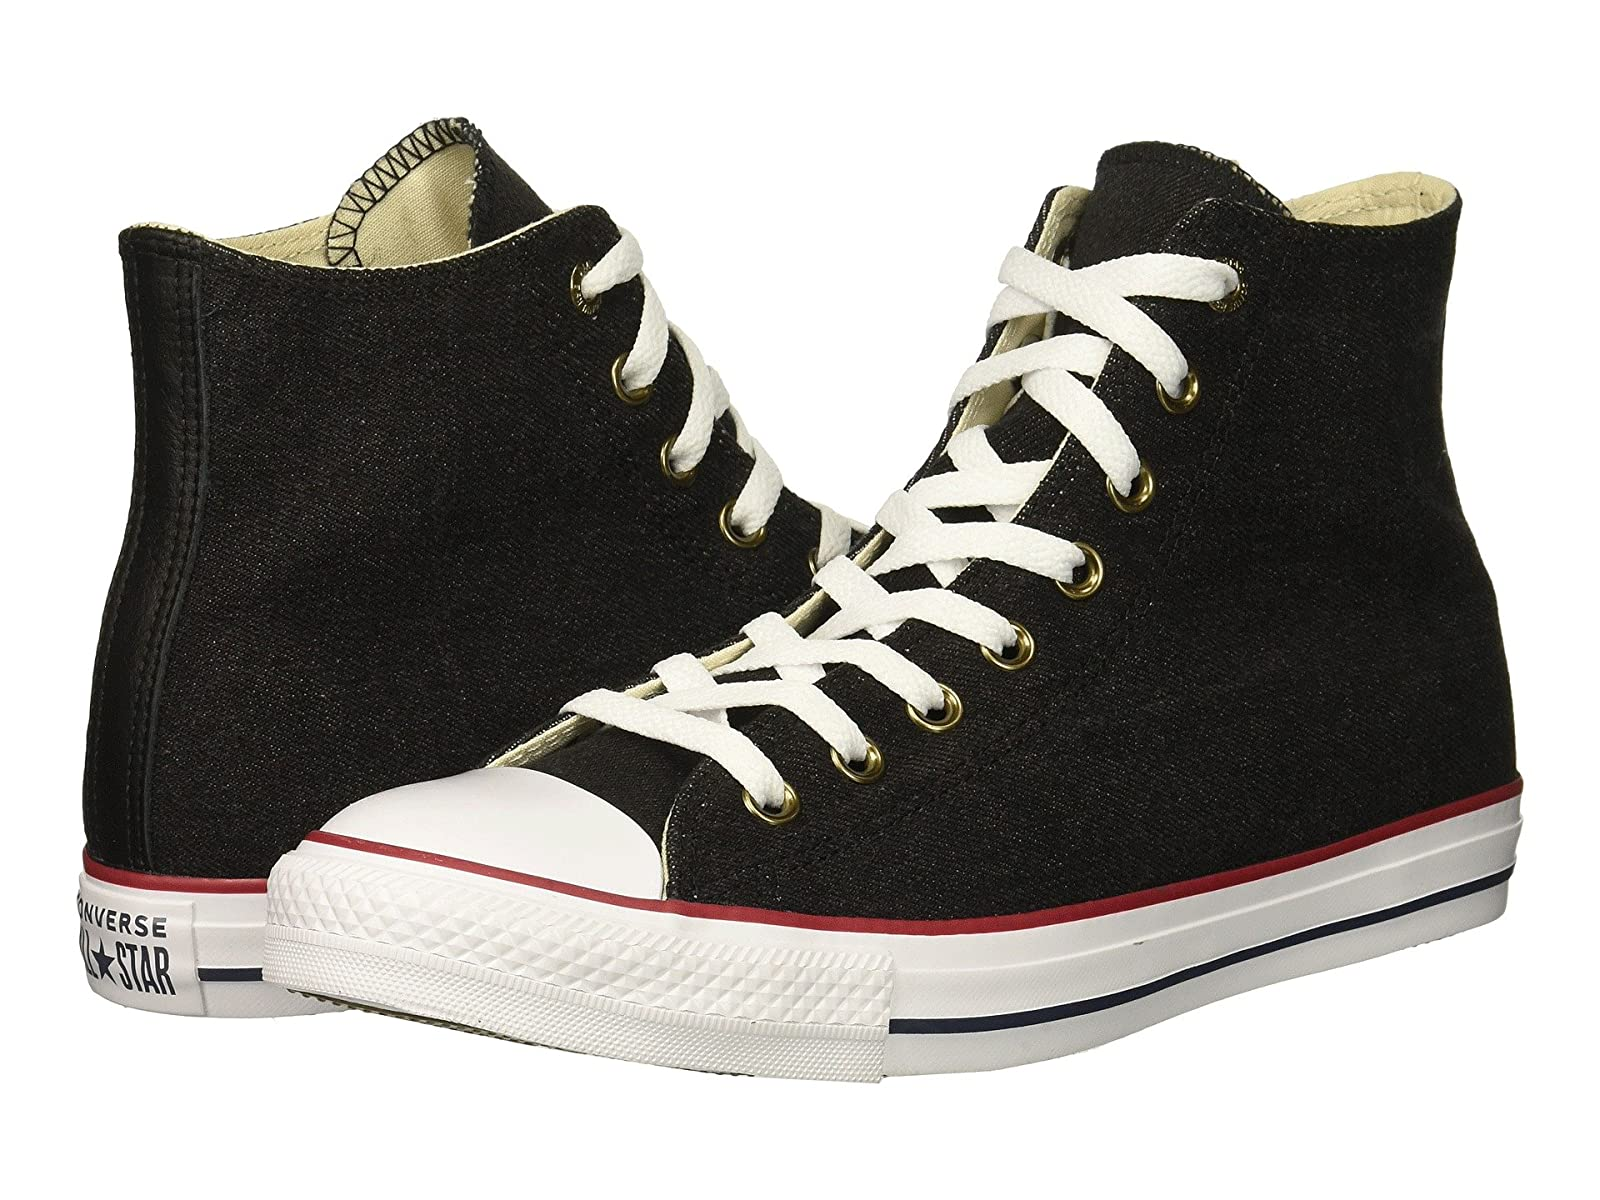 Converse Chuck Taylor In All Star - Worn In Taylor Denim Hi:Easy-To-Clean Surface:Mr/Ms bb3259